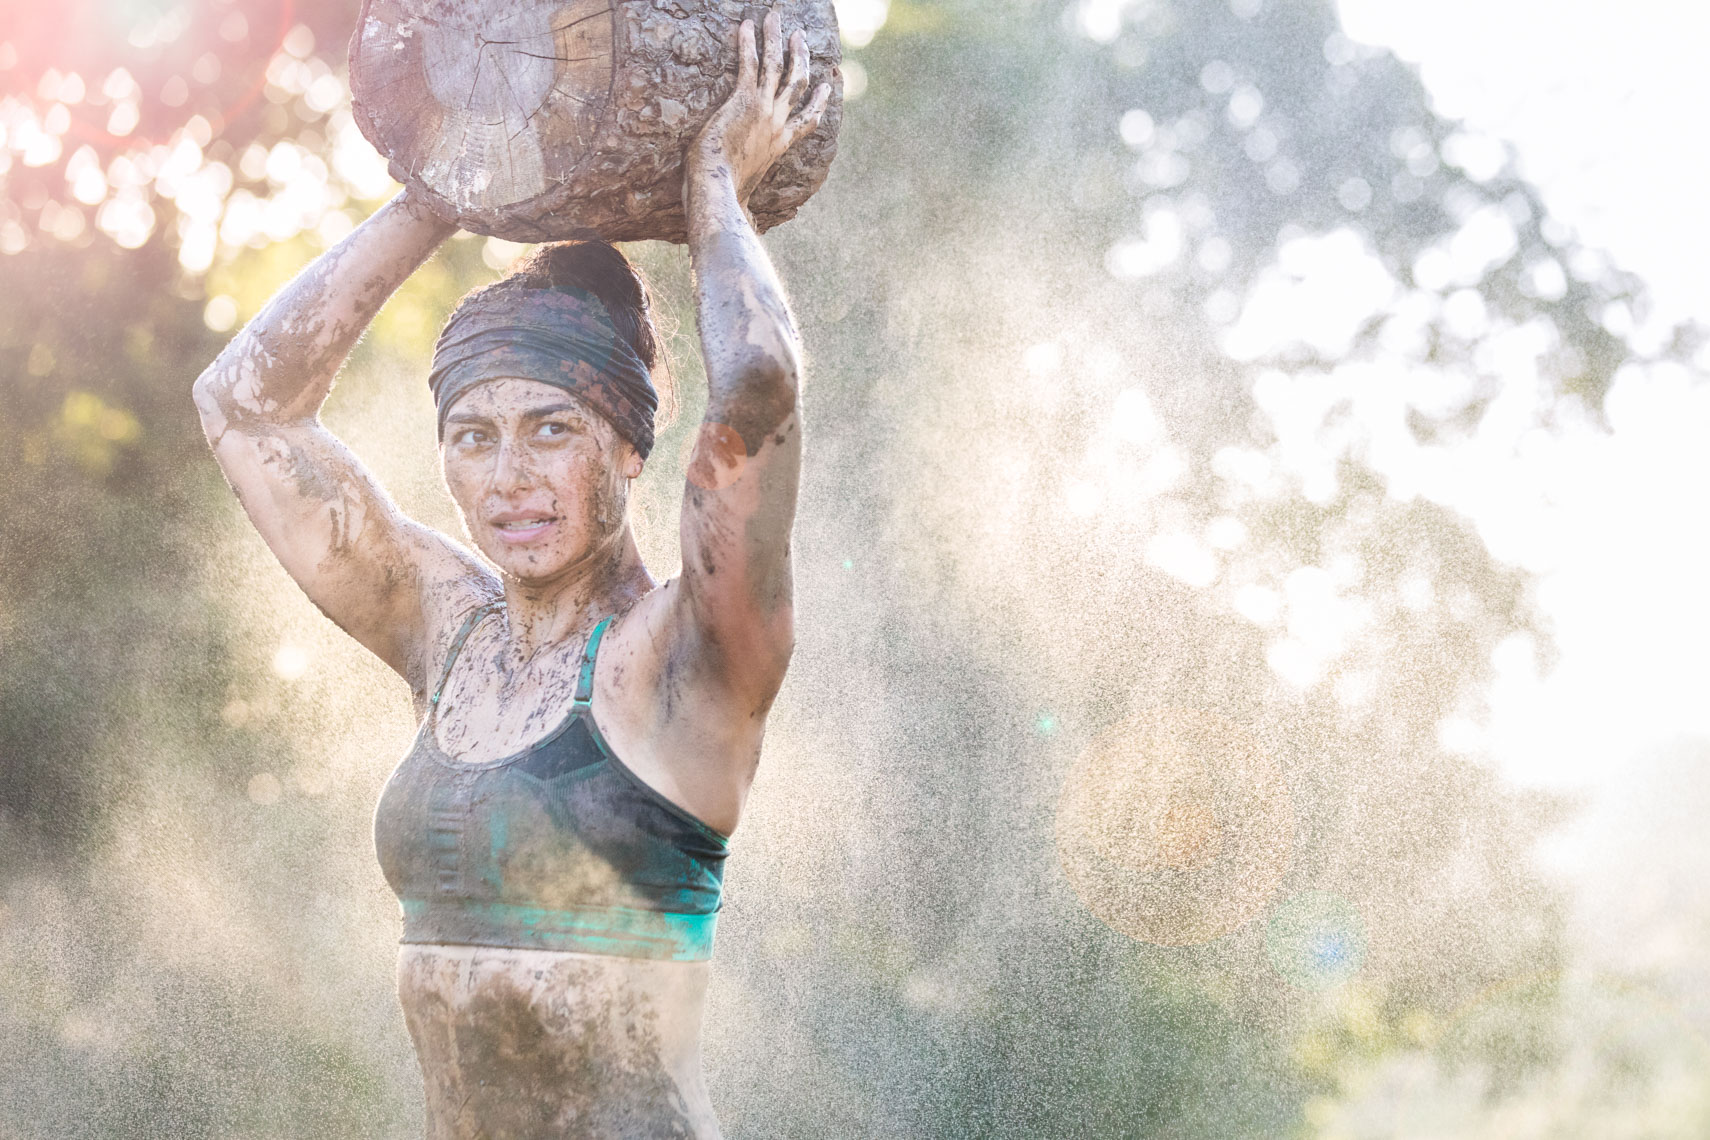 Tough Mudder, OCR racing by fitness photographer Robert Houser